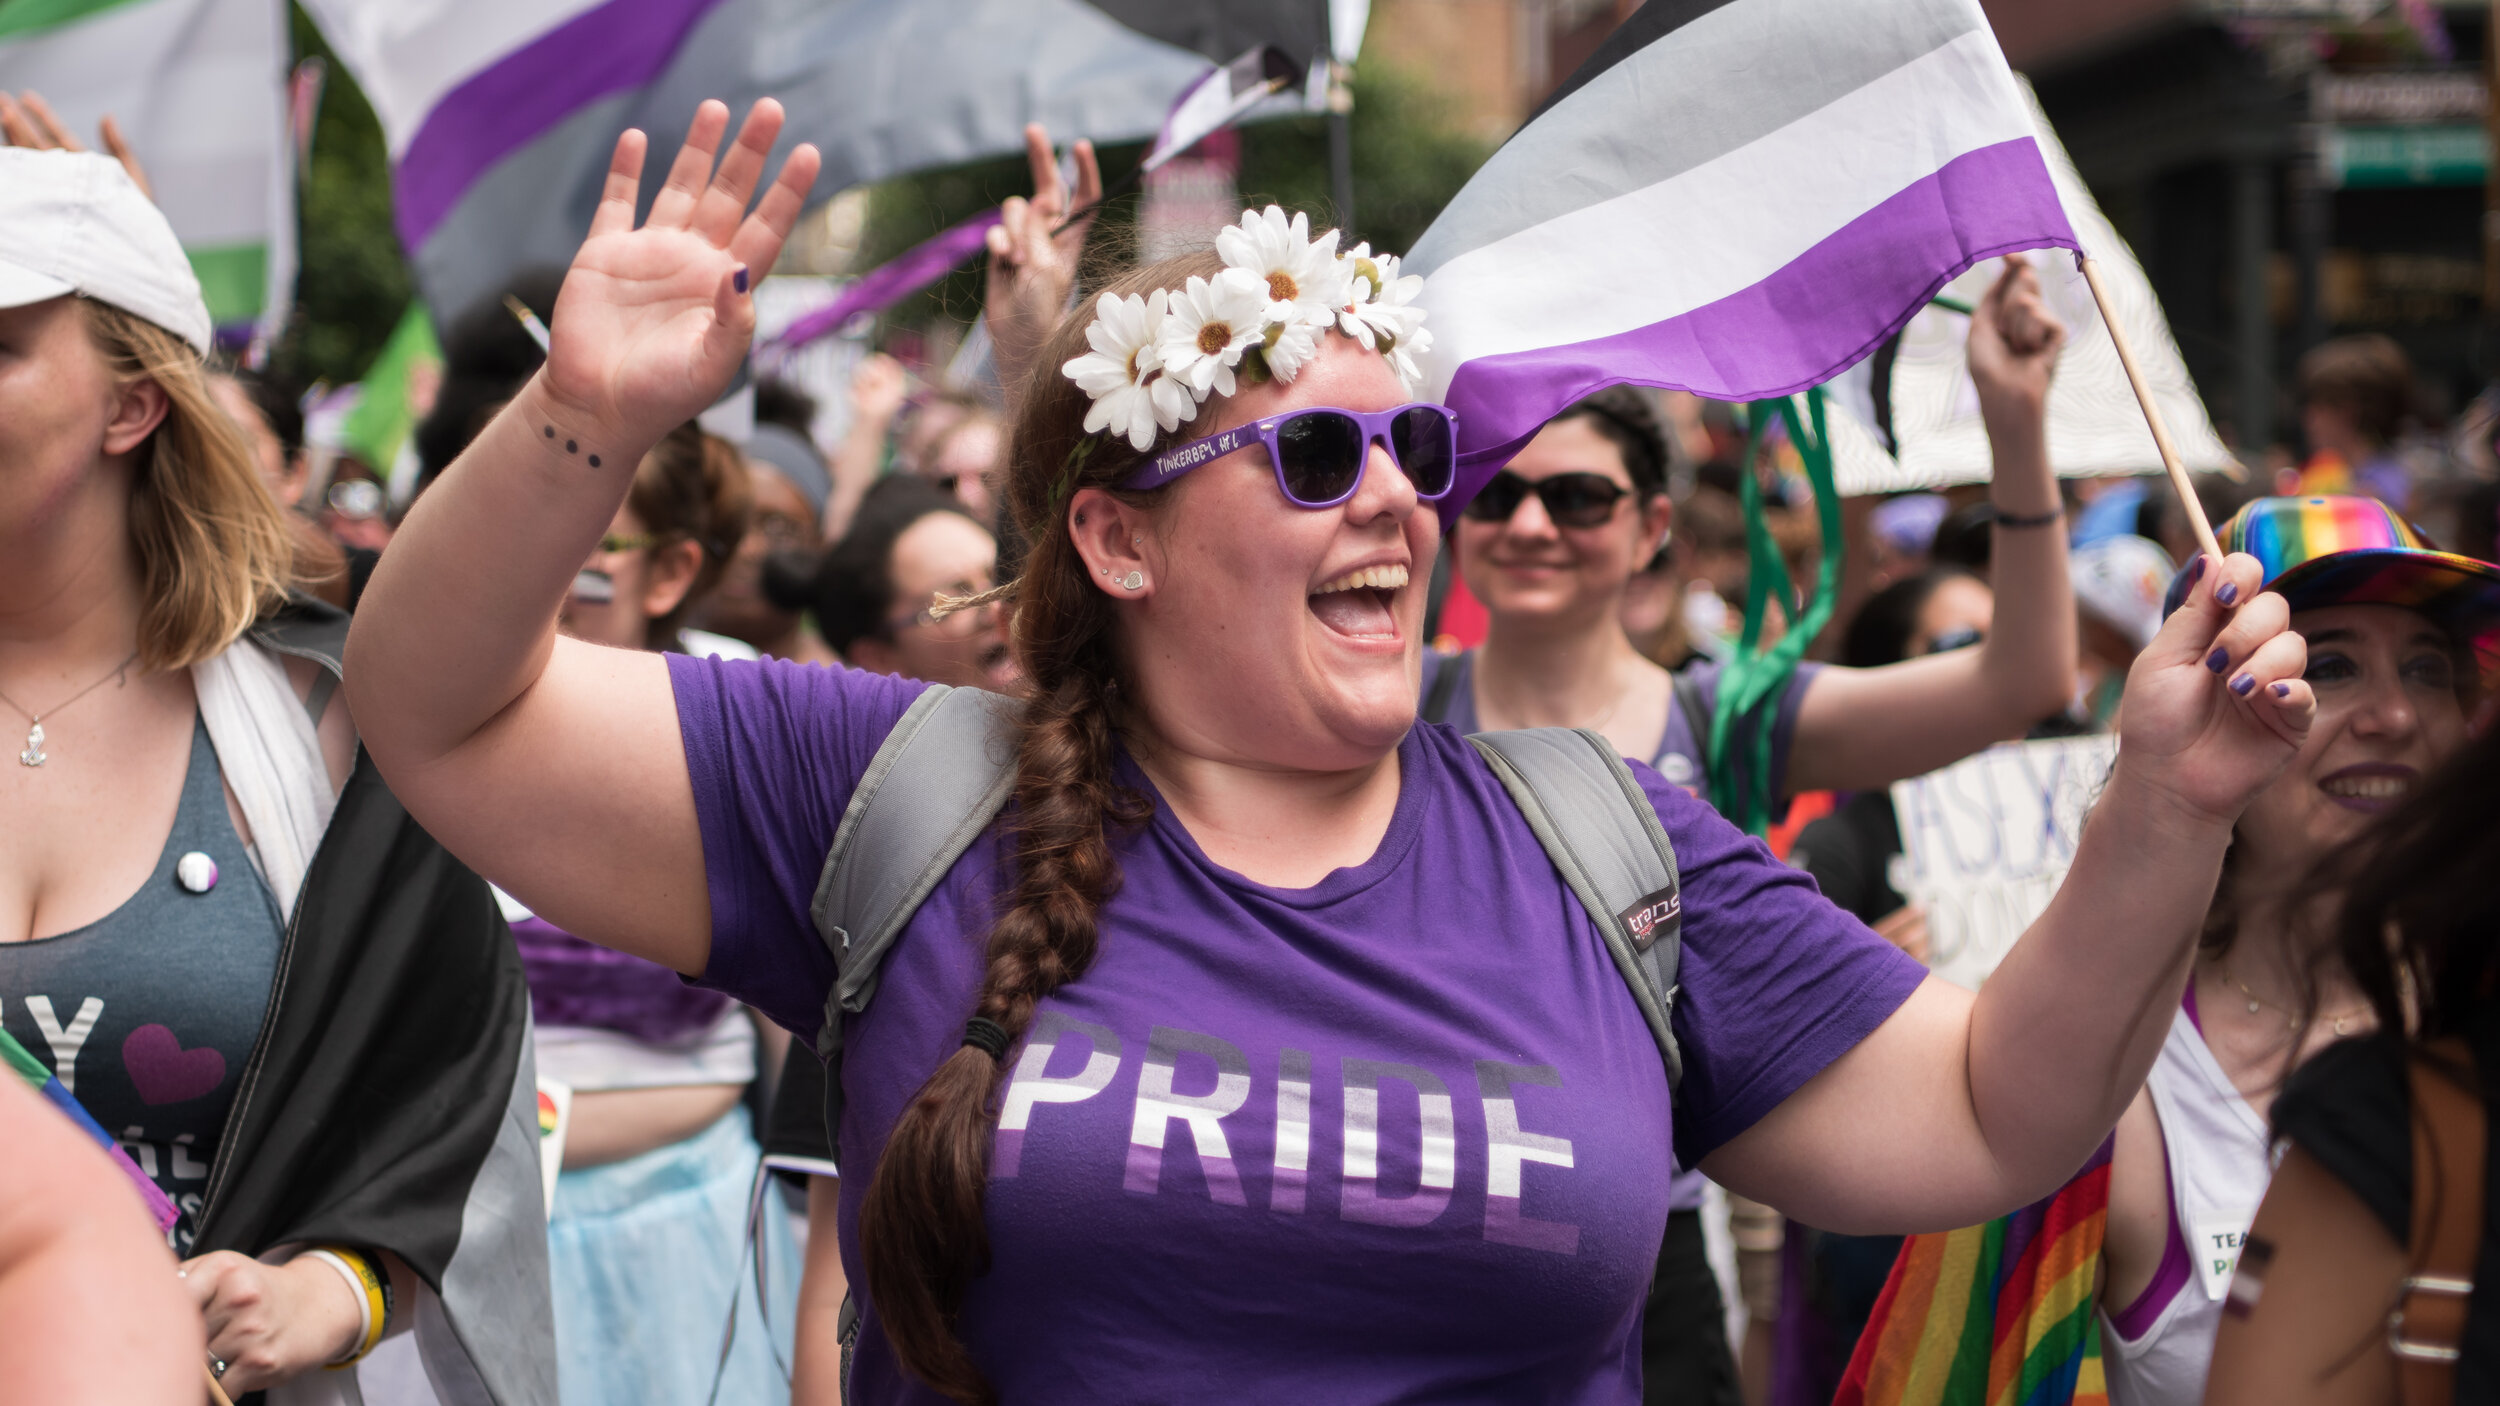 A person with a long brown braid in their hair is cheering and holding an ace flag in their right hand. They also have an ace pride shirt.